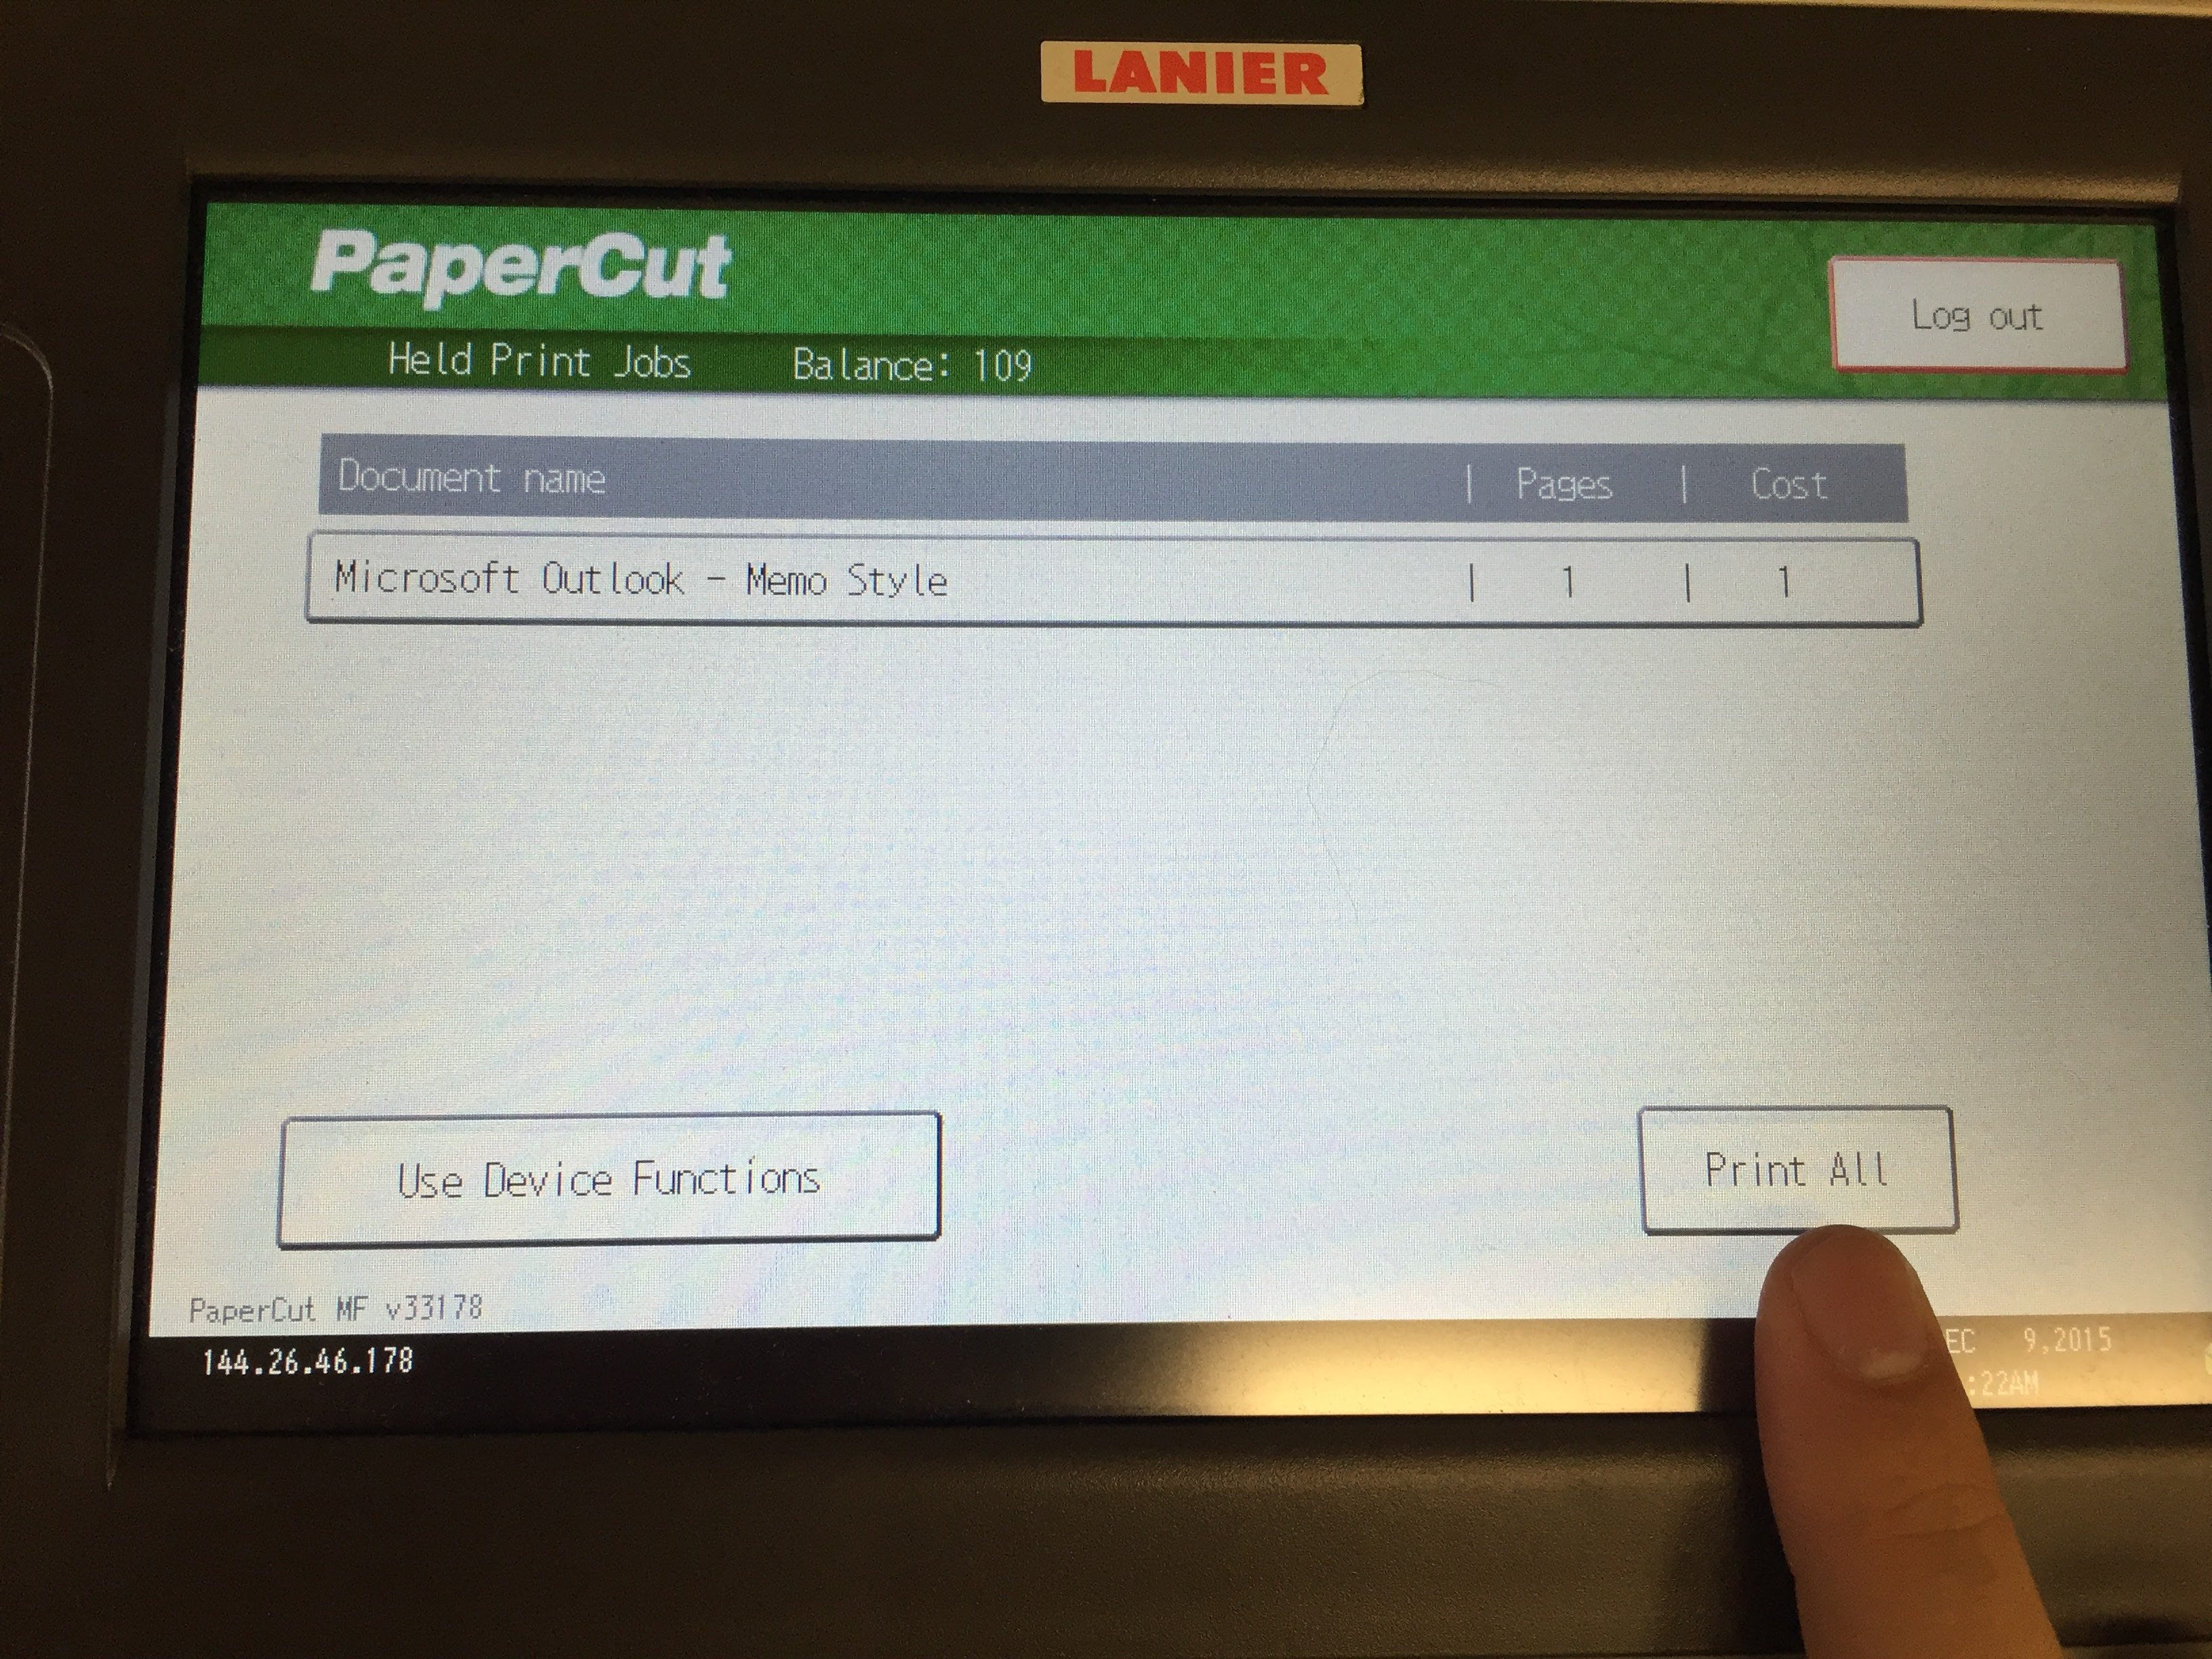 ramprint tech help libguides at west chester university of pa